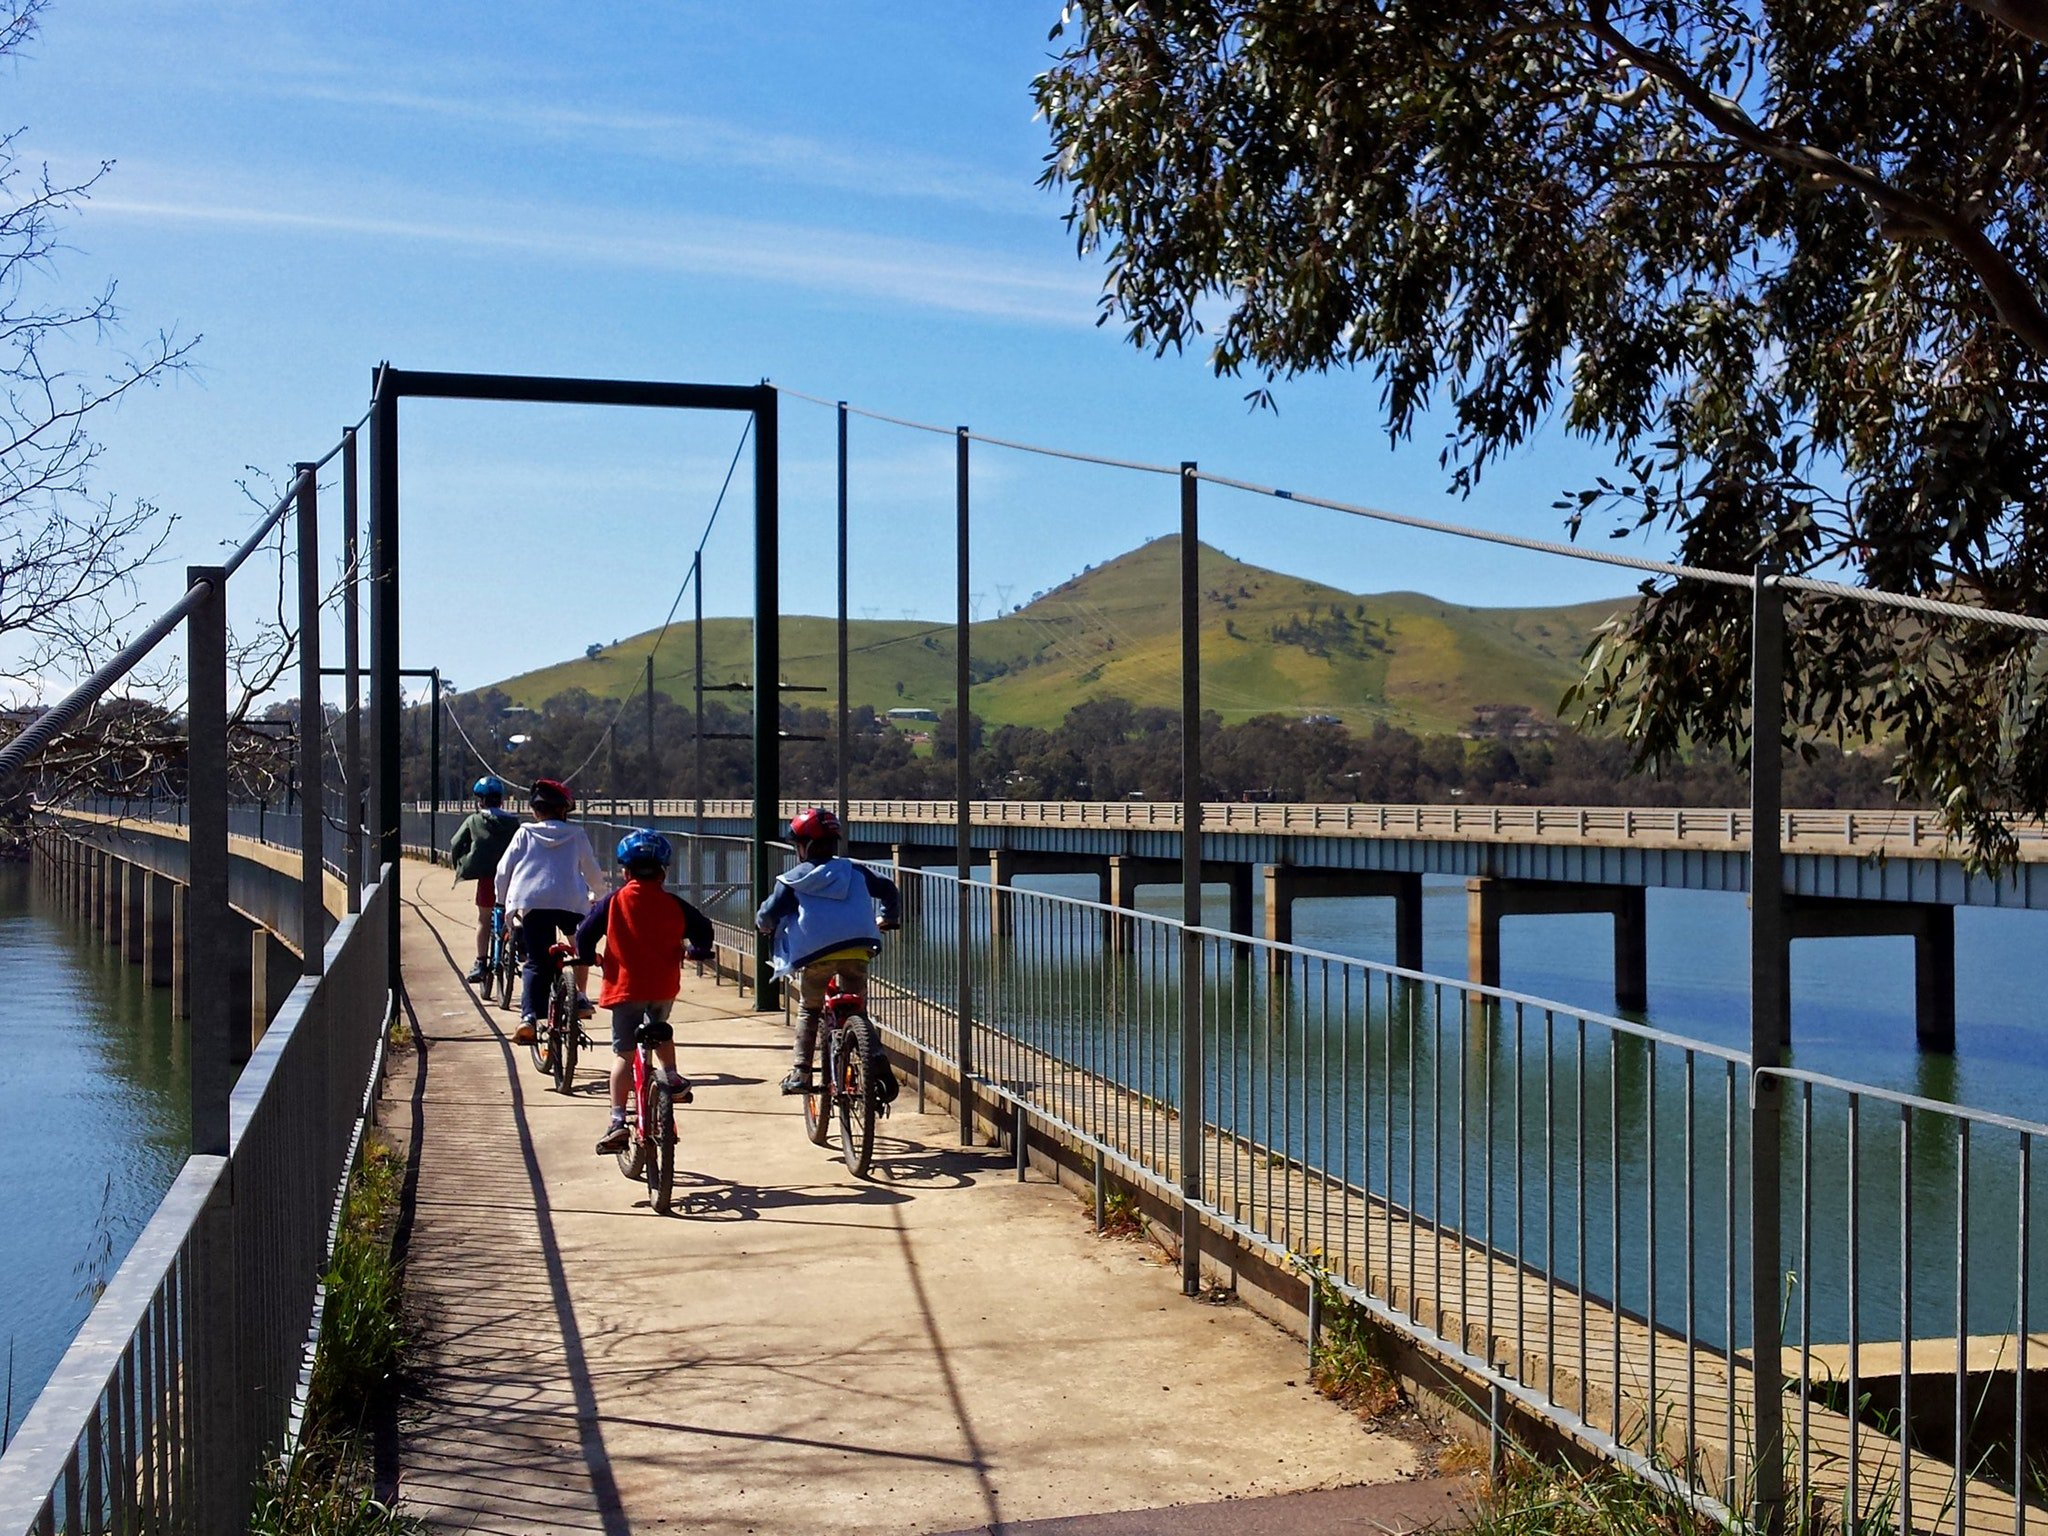 Rail Trail - Bonnie Bridge